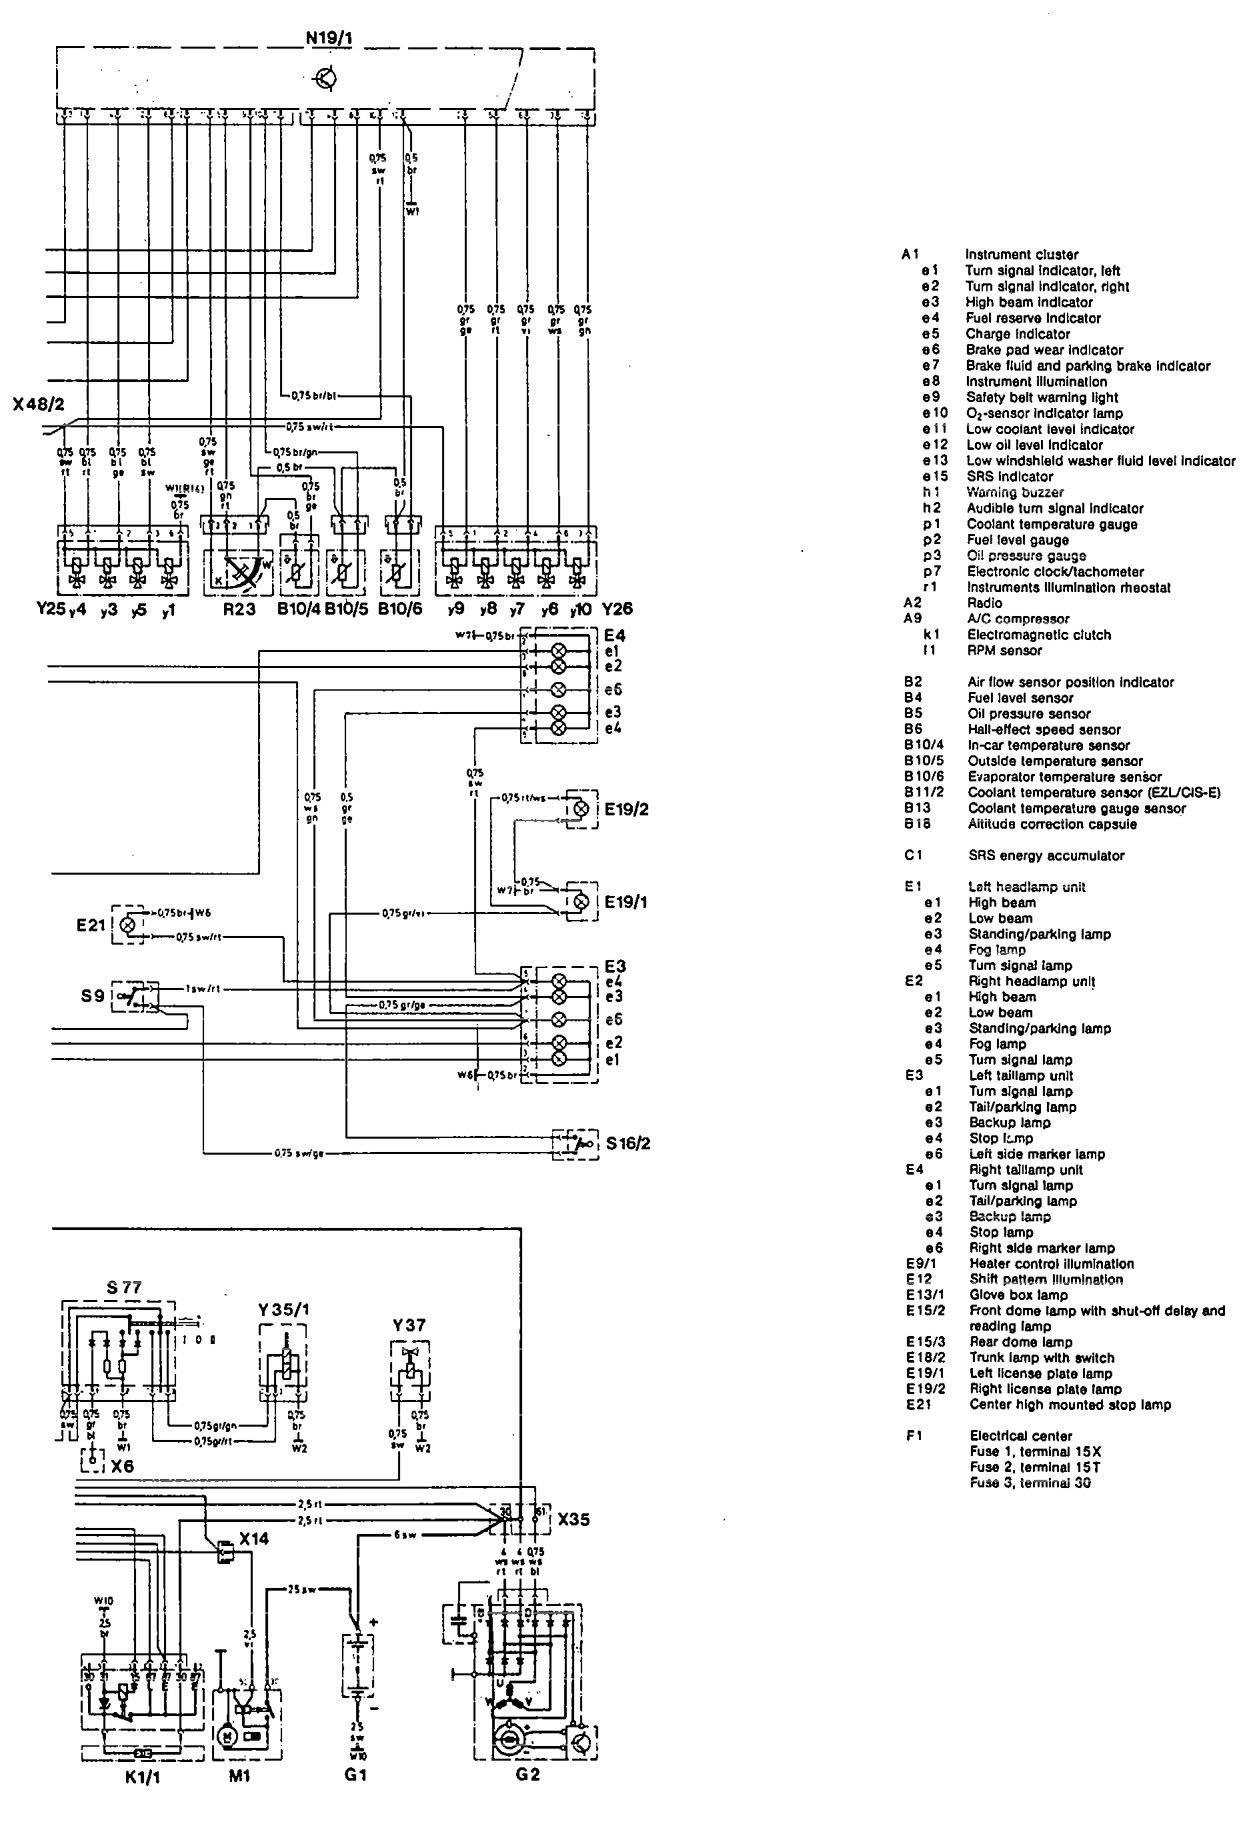 Mercedes Benz Sprinter Radio Wiring Diagram. Mercedes